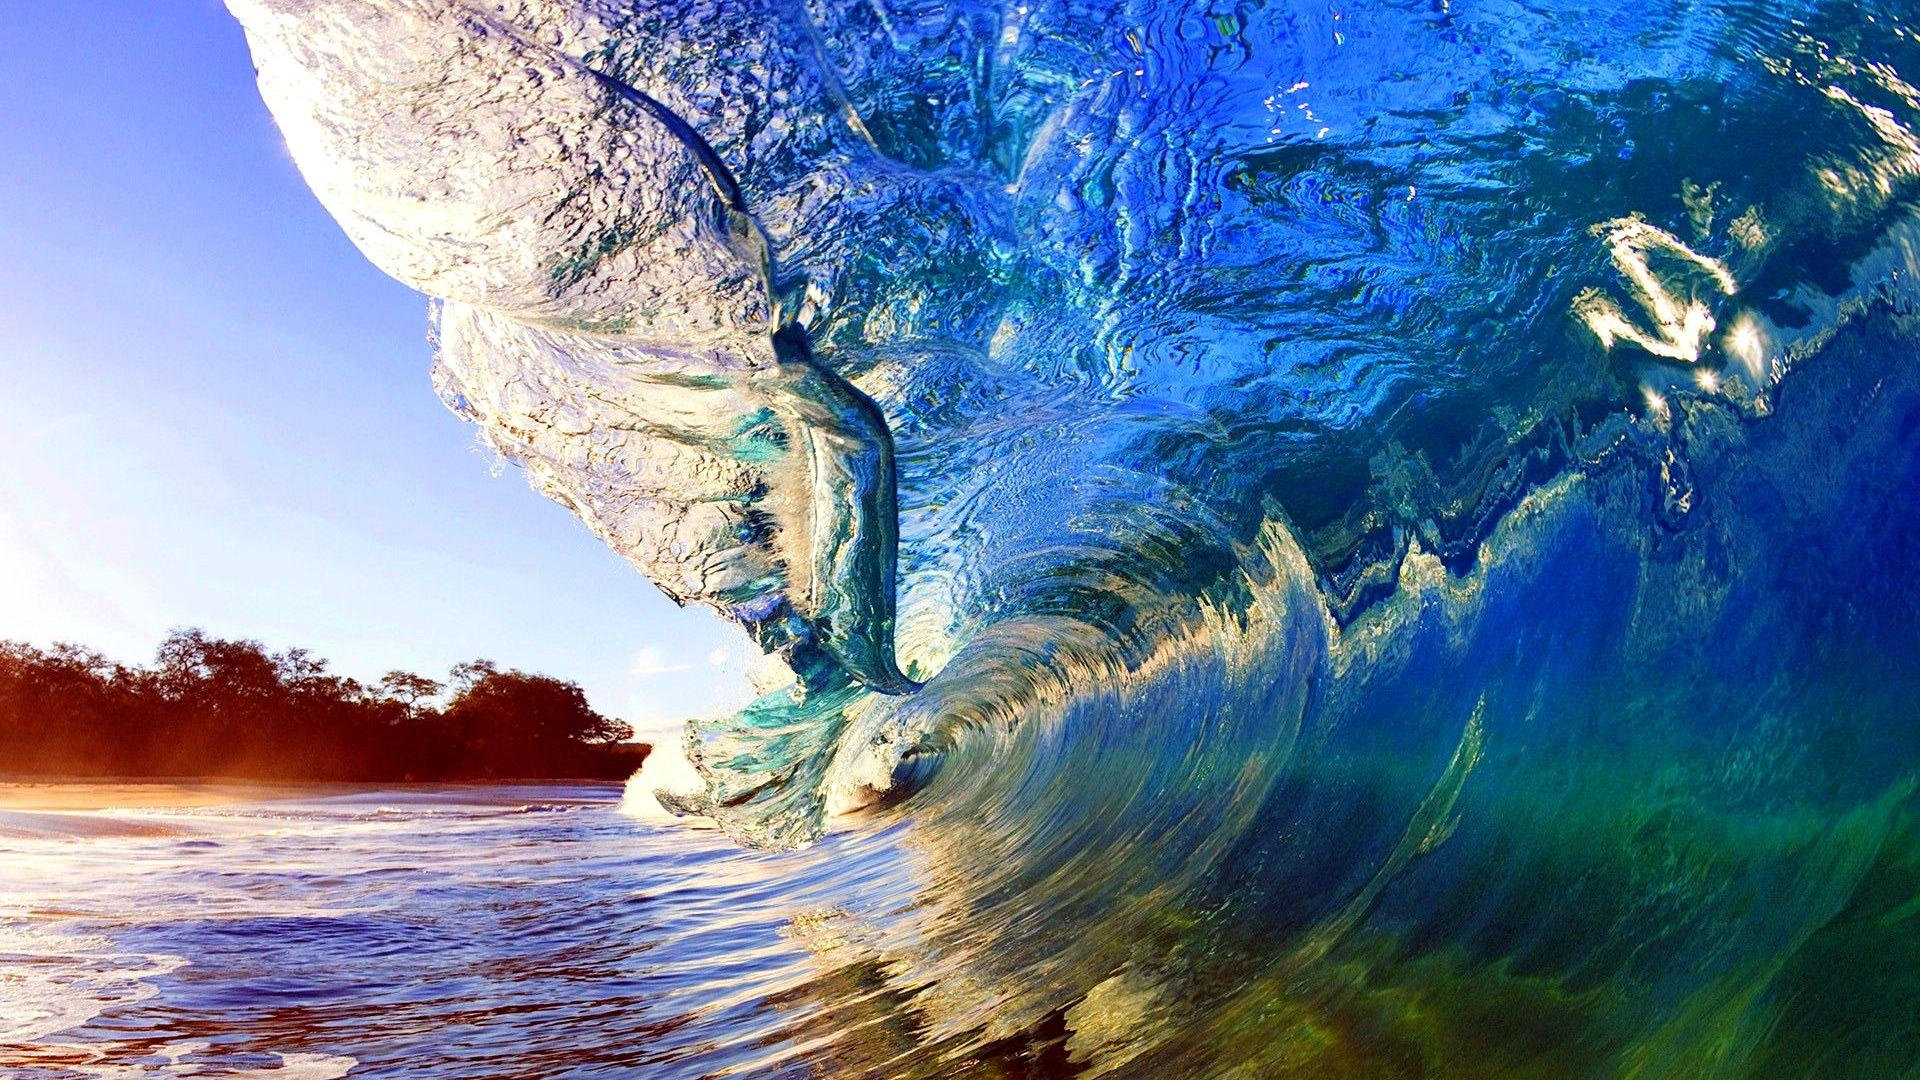 Large resolution wallpapers wallpapersafari wave backgrounds wallpaper high definition high quality sciox Choice Image